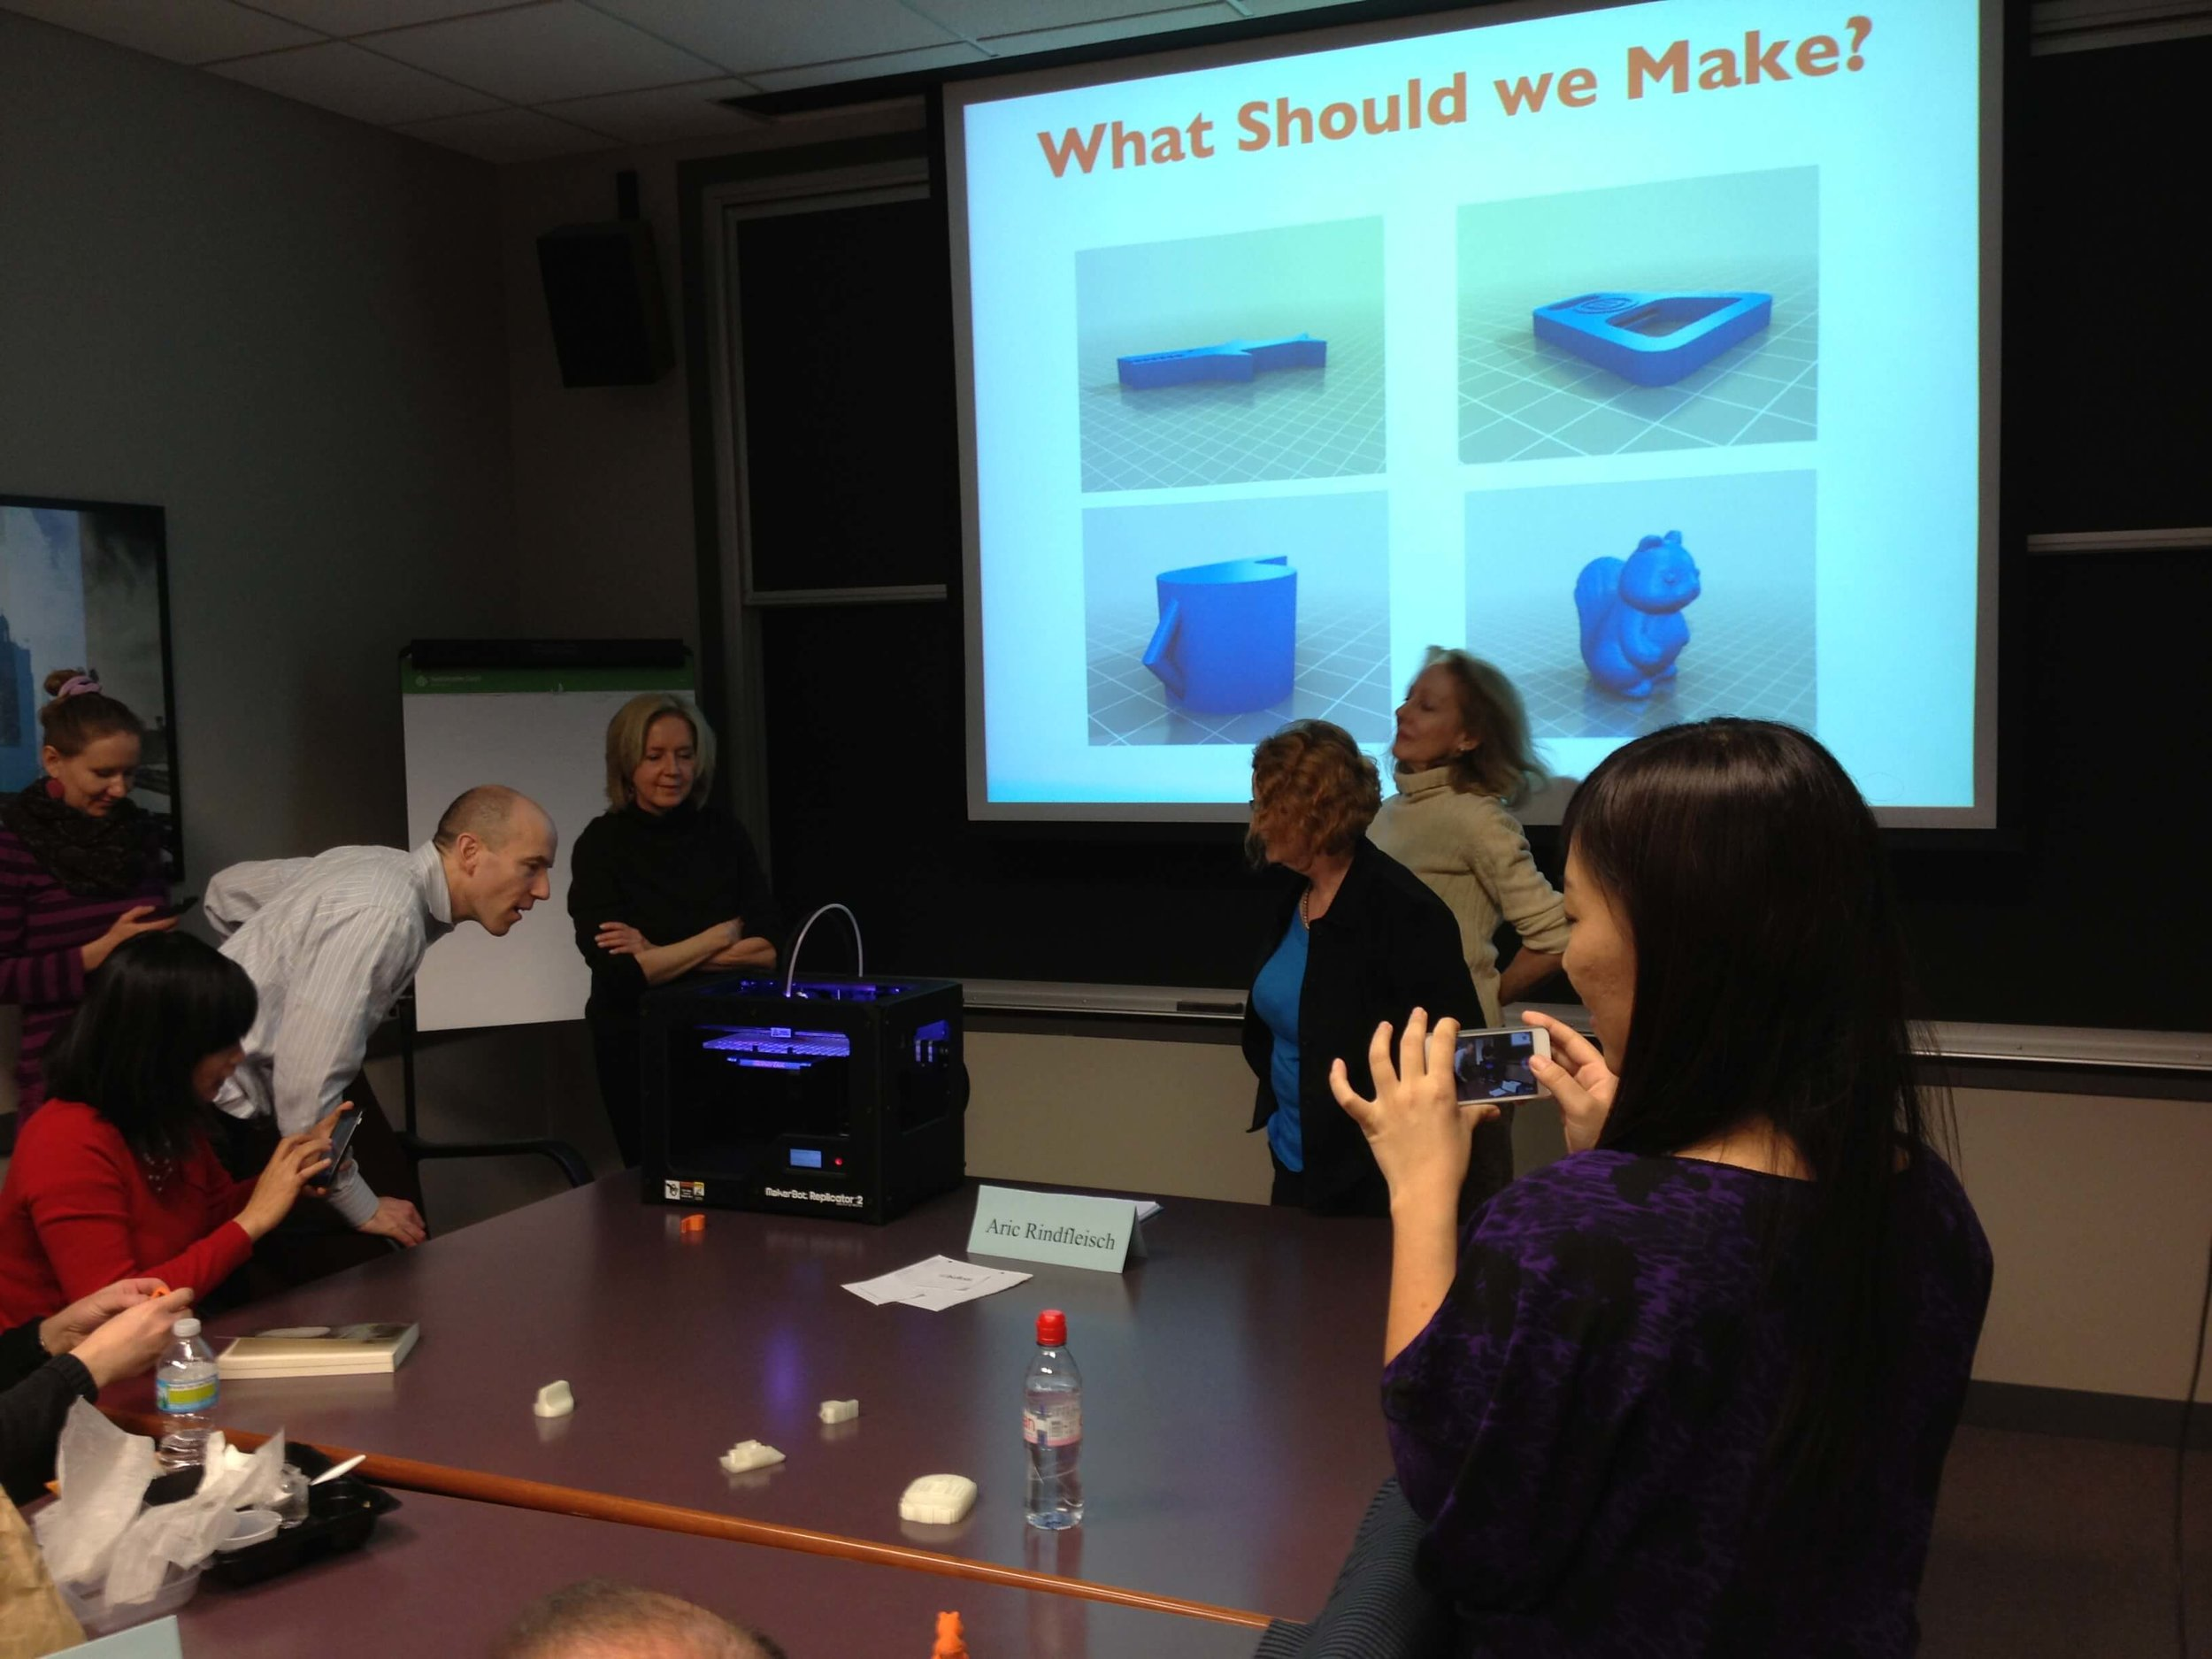 Chicago-area marketing faculty captivated by 3D printing.